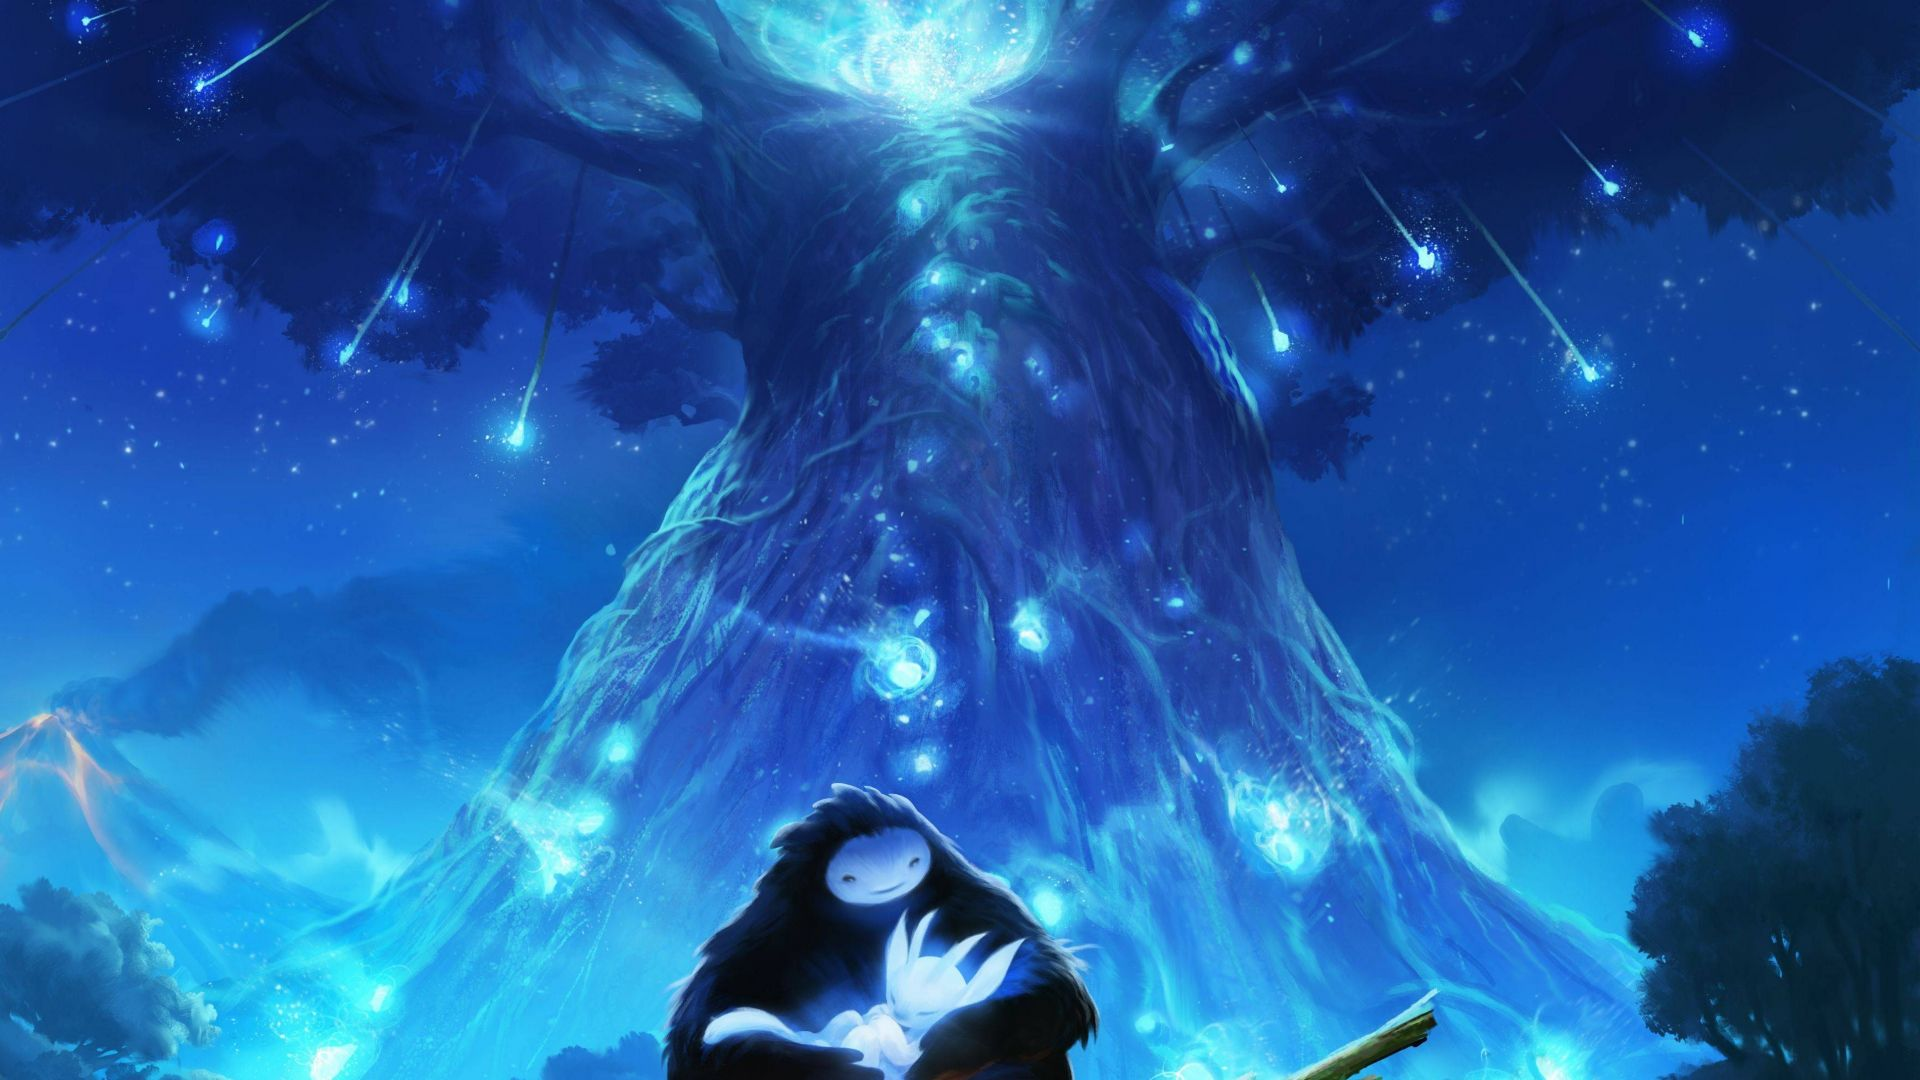 Ori and the Blind Forest, GDC Awards 2016, PC, PS 4, Xbox One (horizontal)